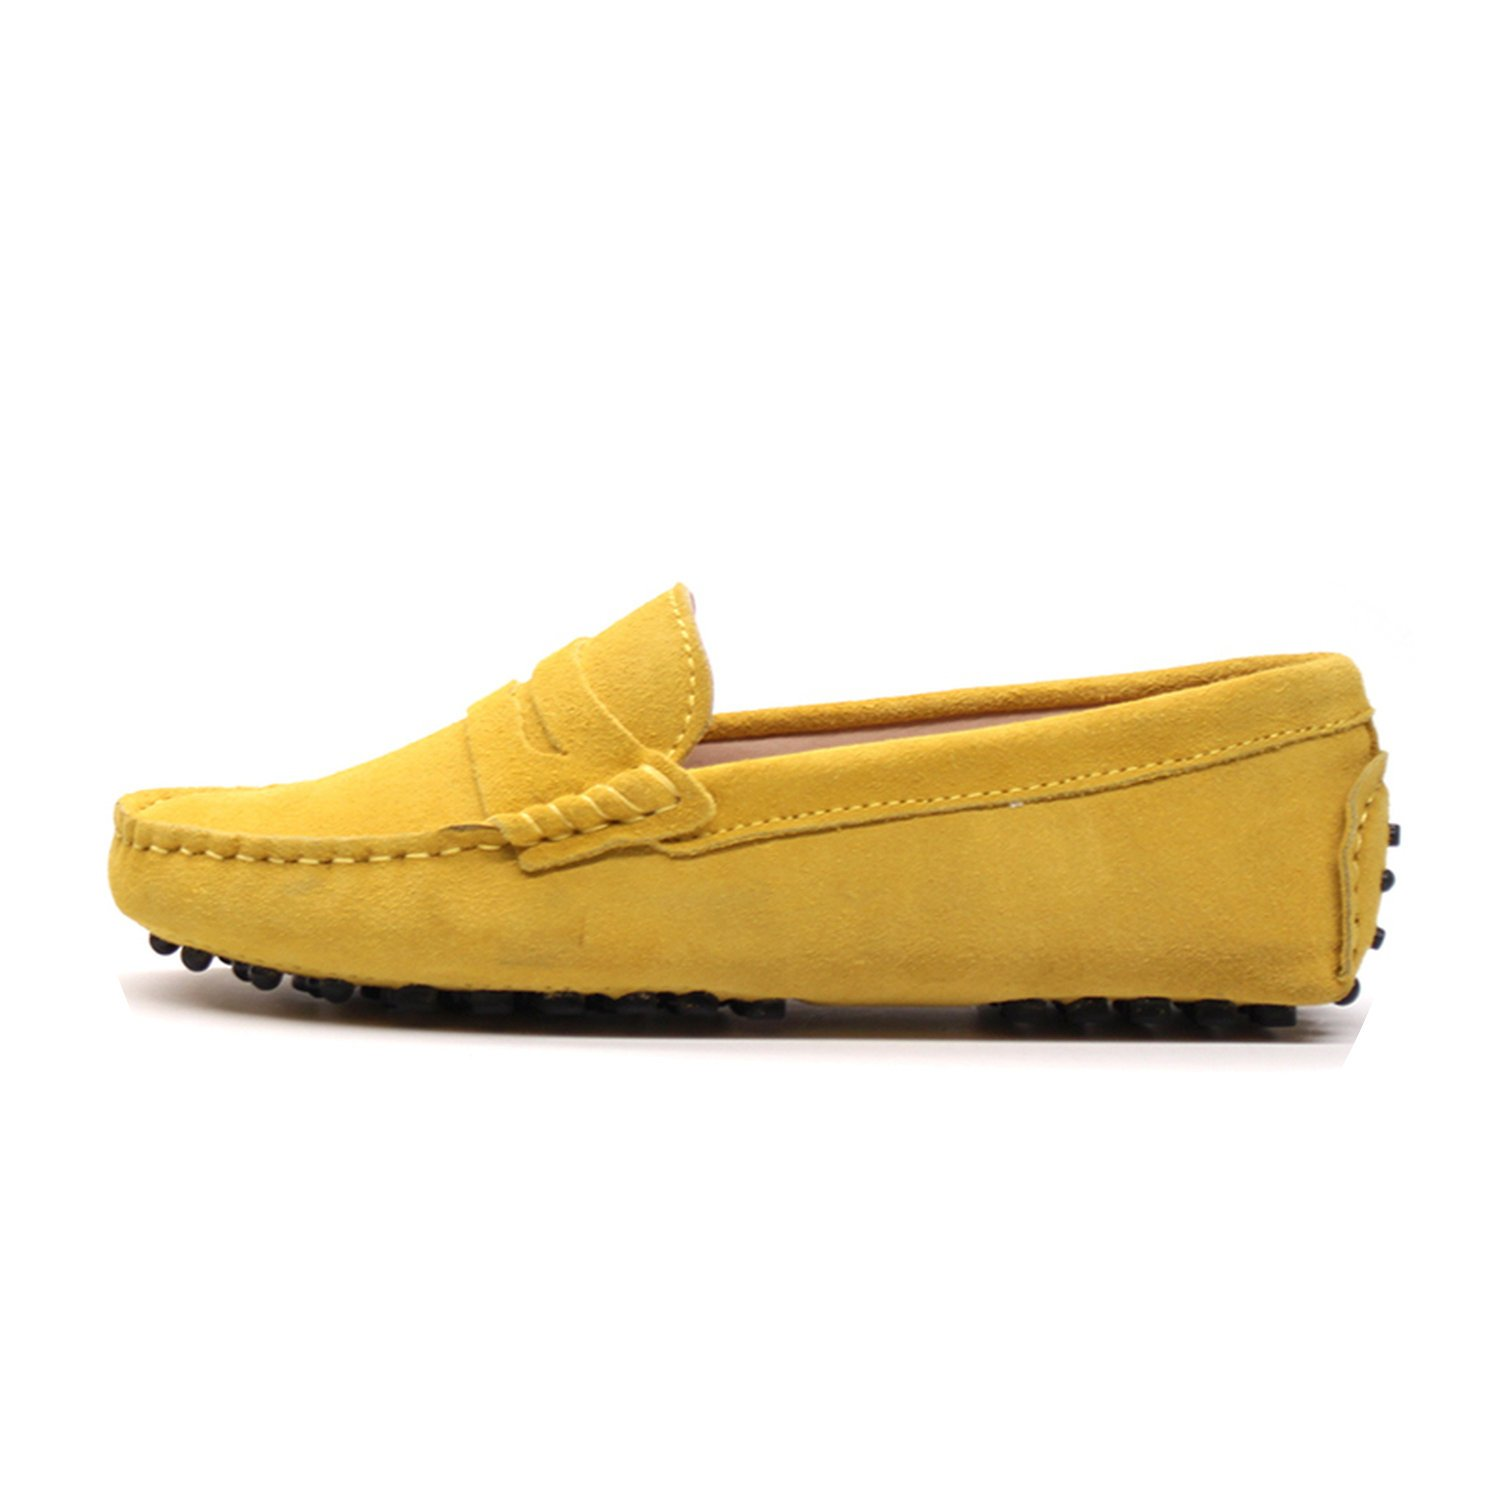 2018 New Women Flats Genuine Leather Driving Shoes Summer Women Casual Shoes B07DTZHVQR 7 B(M) US|Yellow